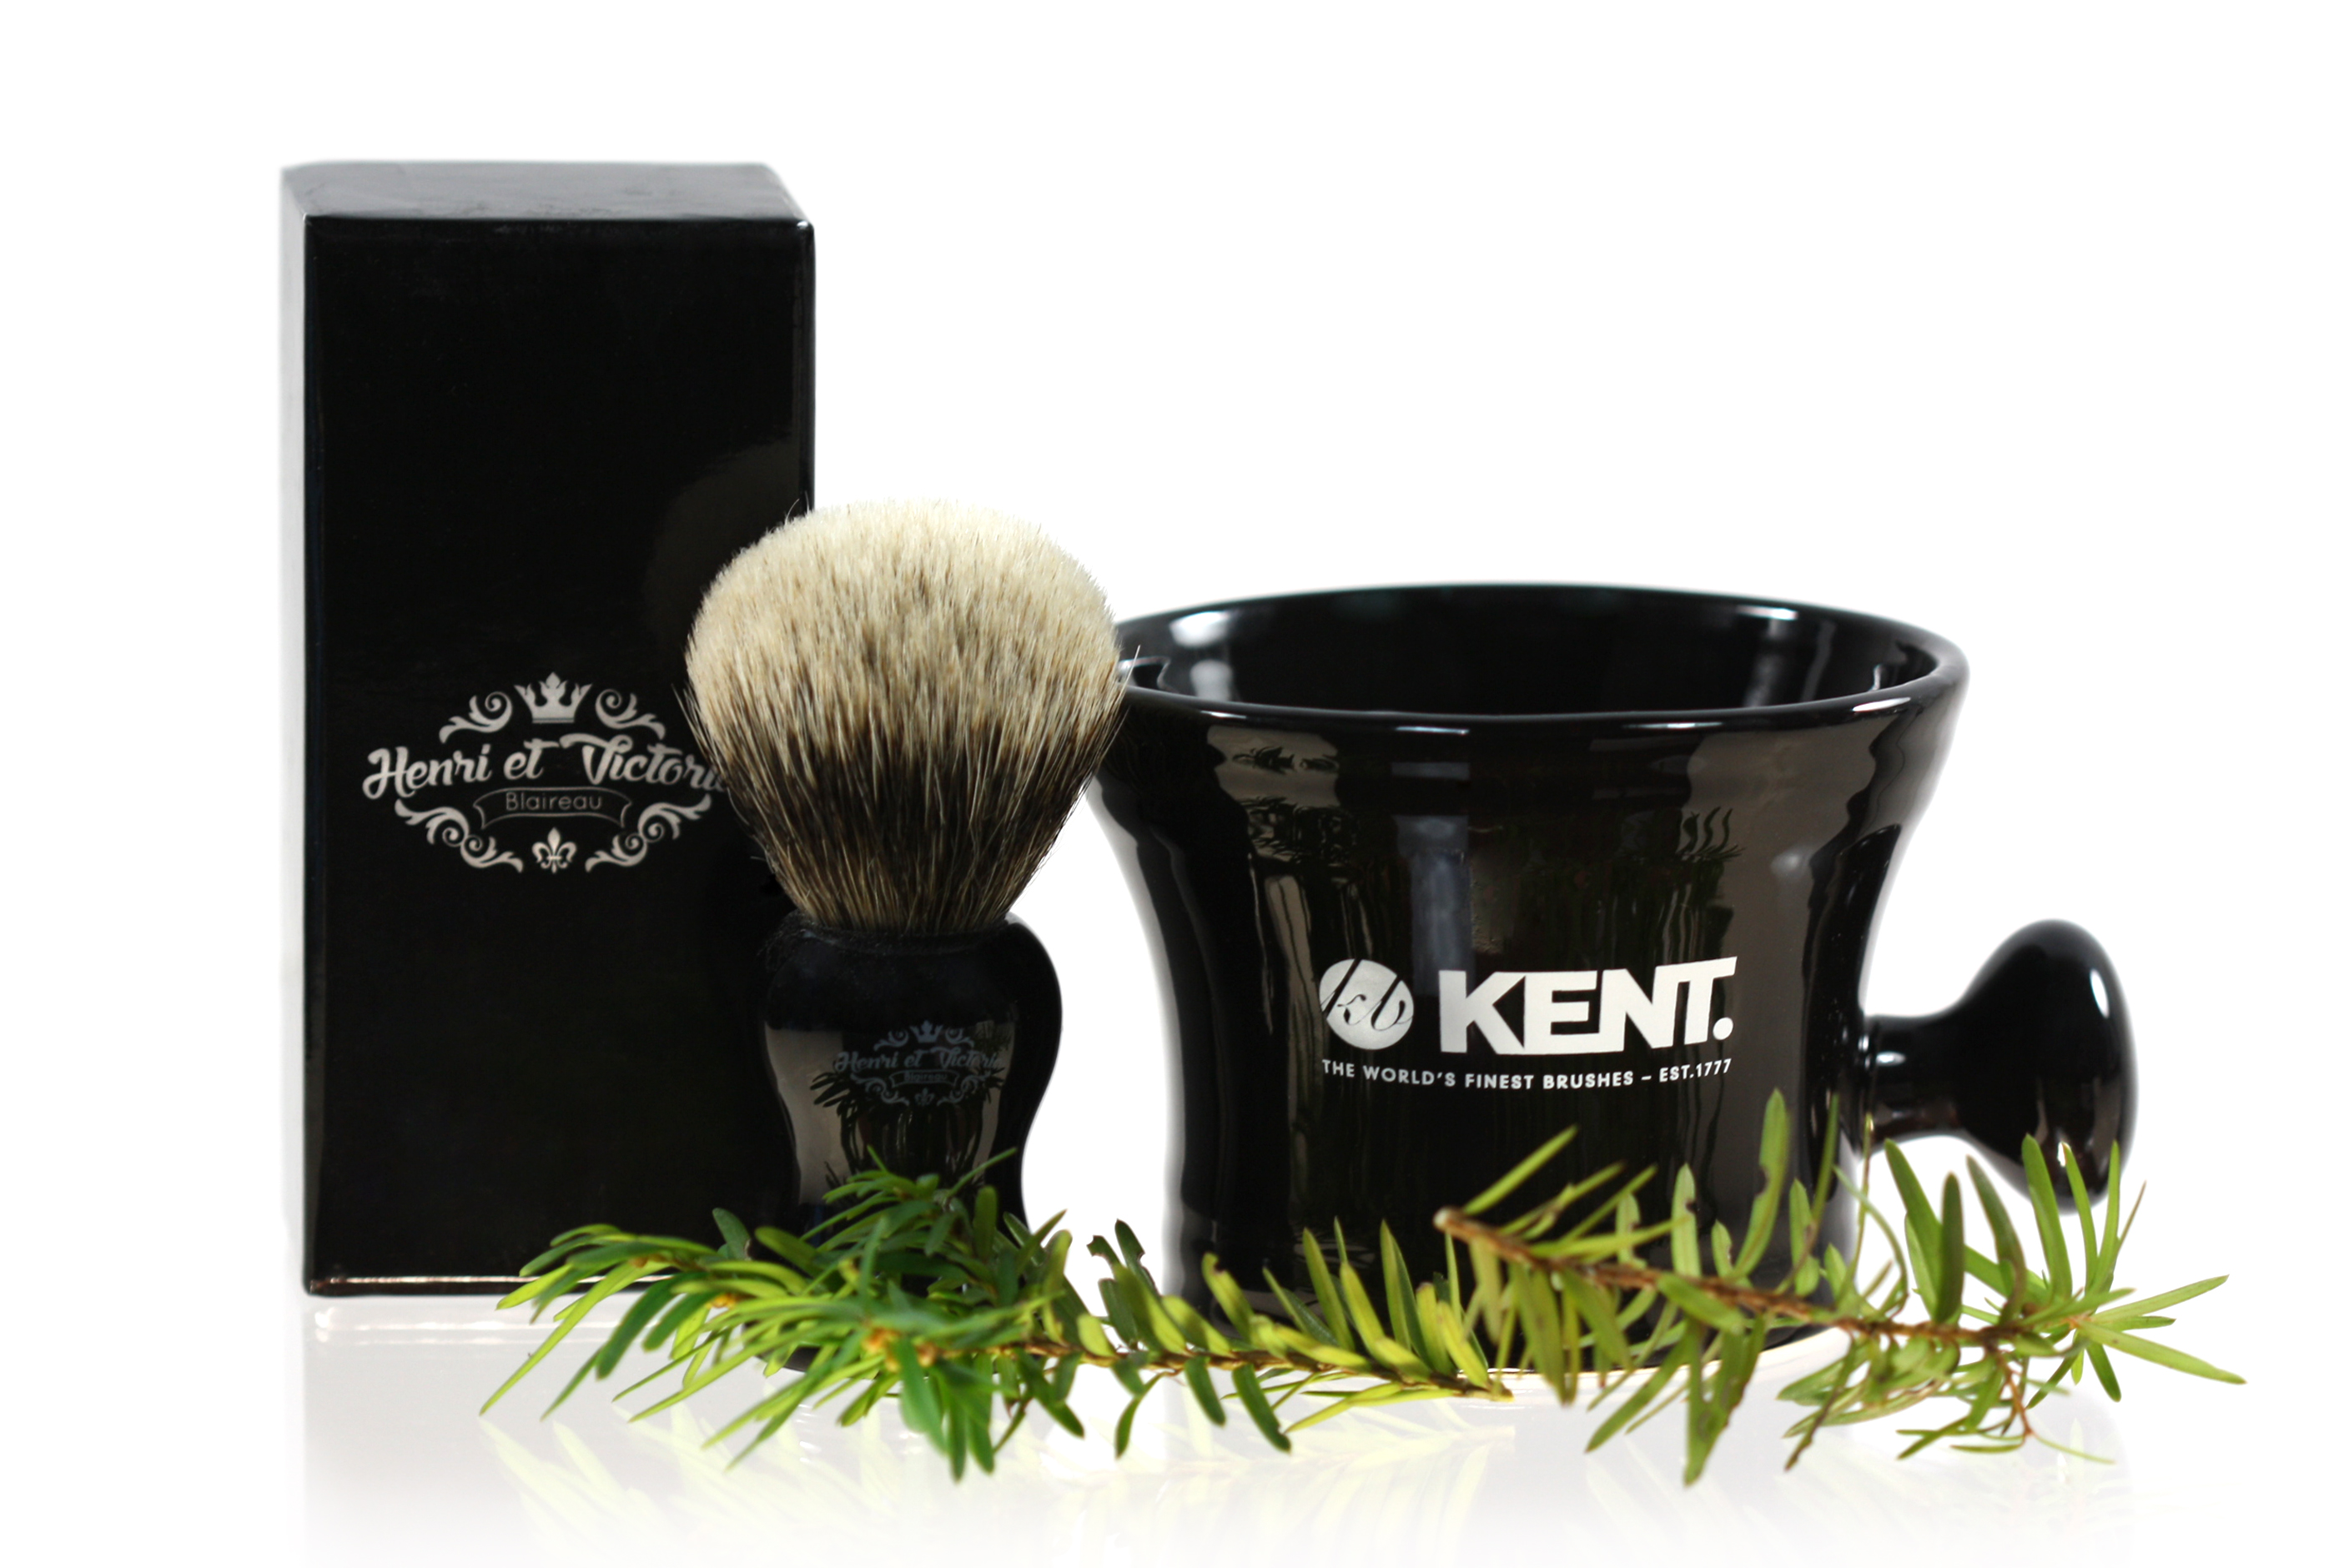 CANADIANS: Win an Henri et Victoria Shaving Brush and Kent Mug